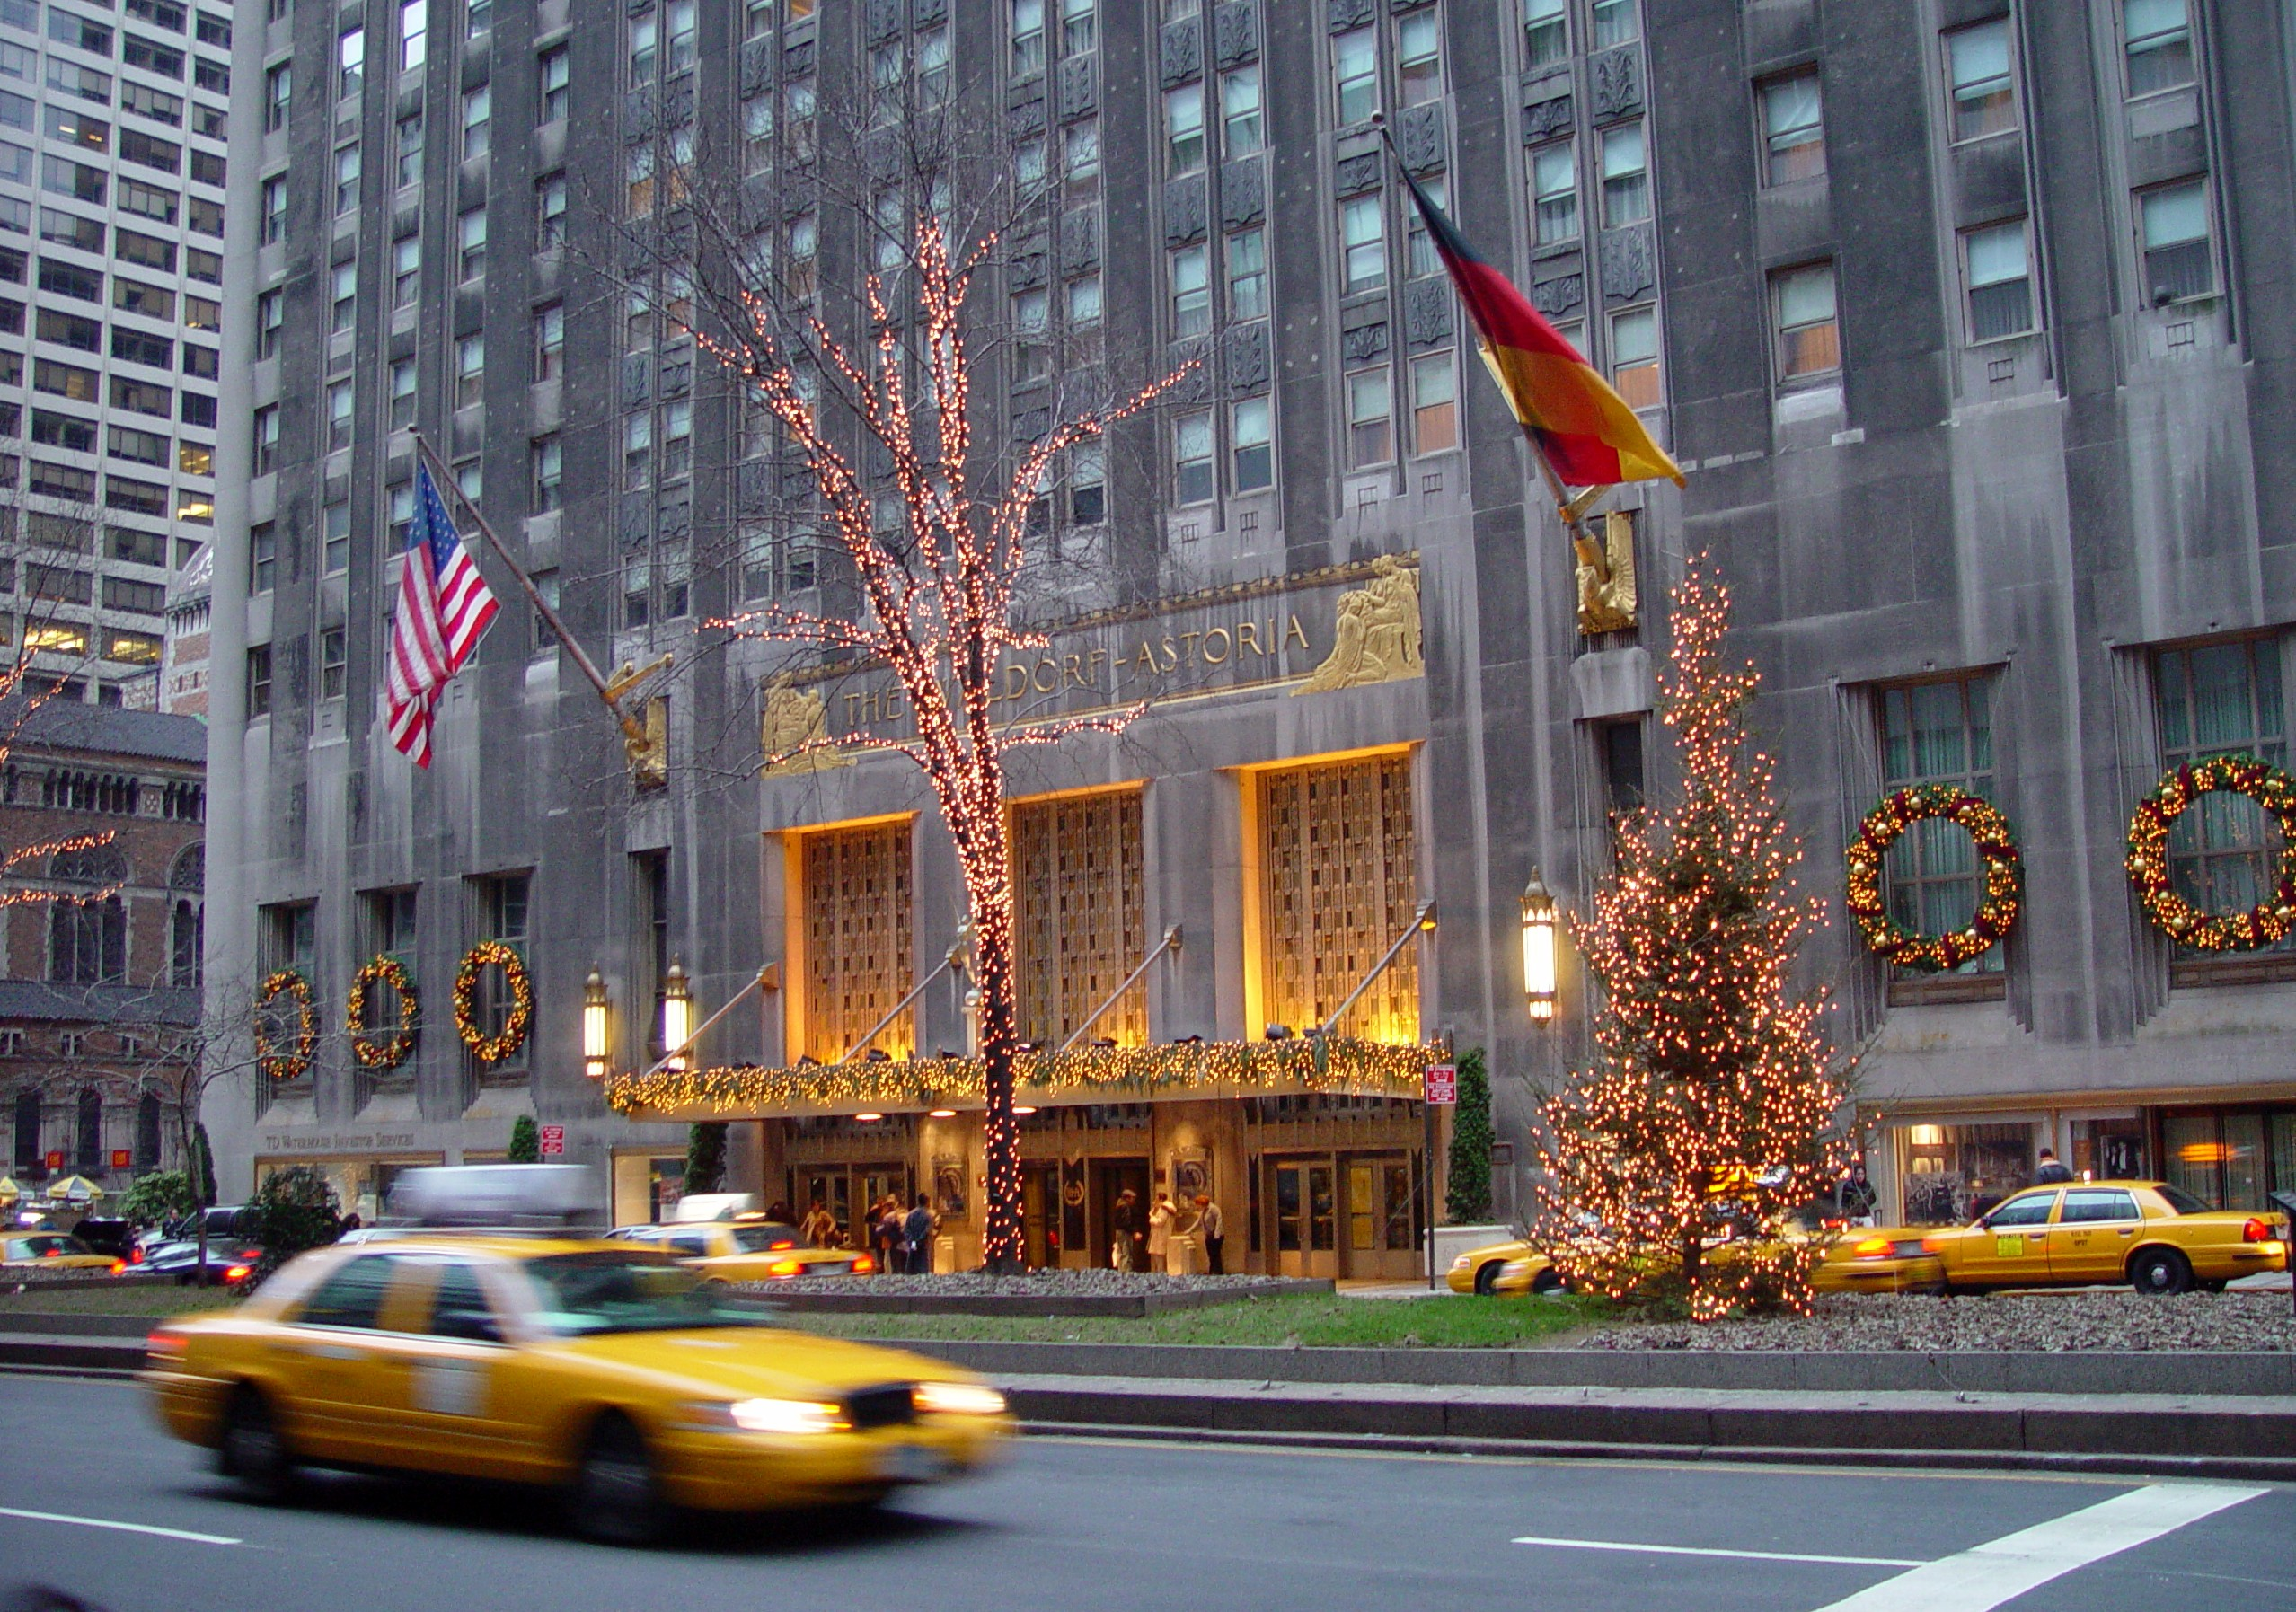 Park Avenue entrance to the Waldorf-Astoria Hotel. Credit: cogito ergo imago/Flickr